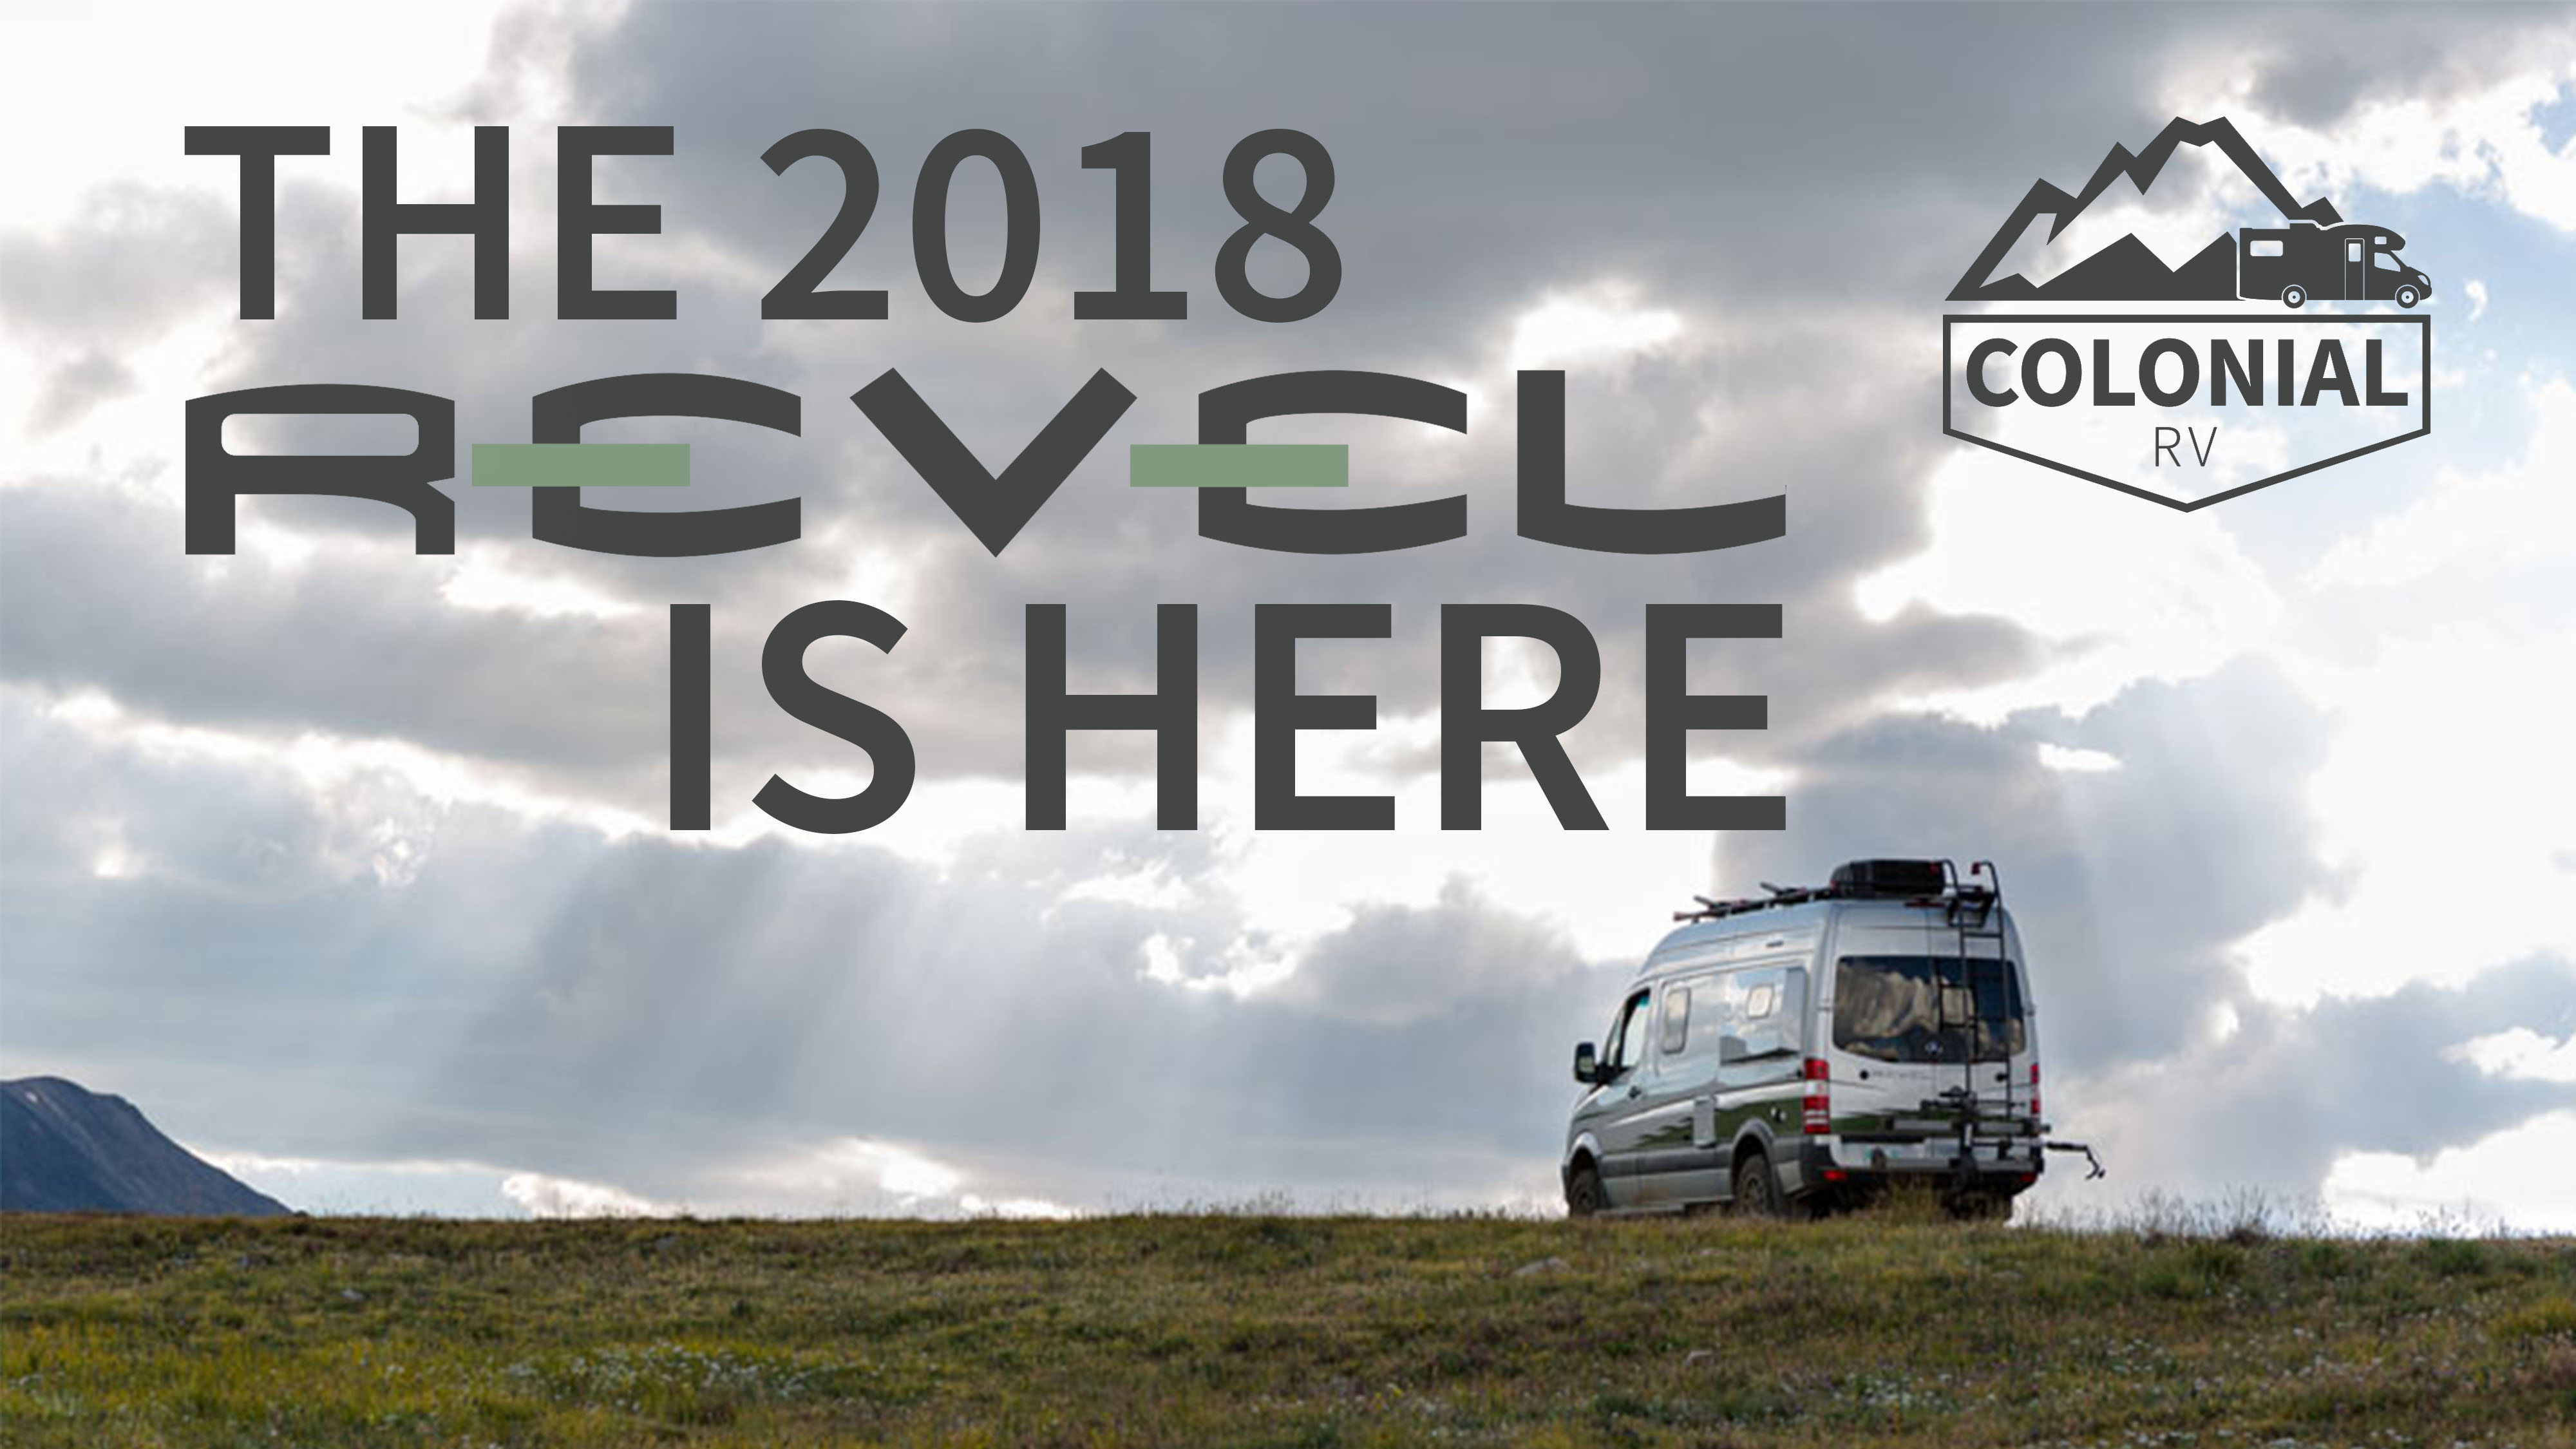 Off the Grid With the 2018 Winnebago Revel